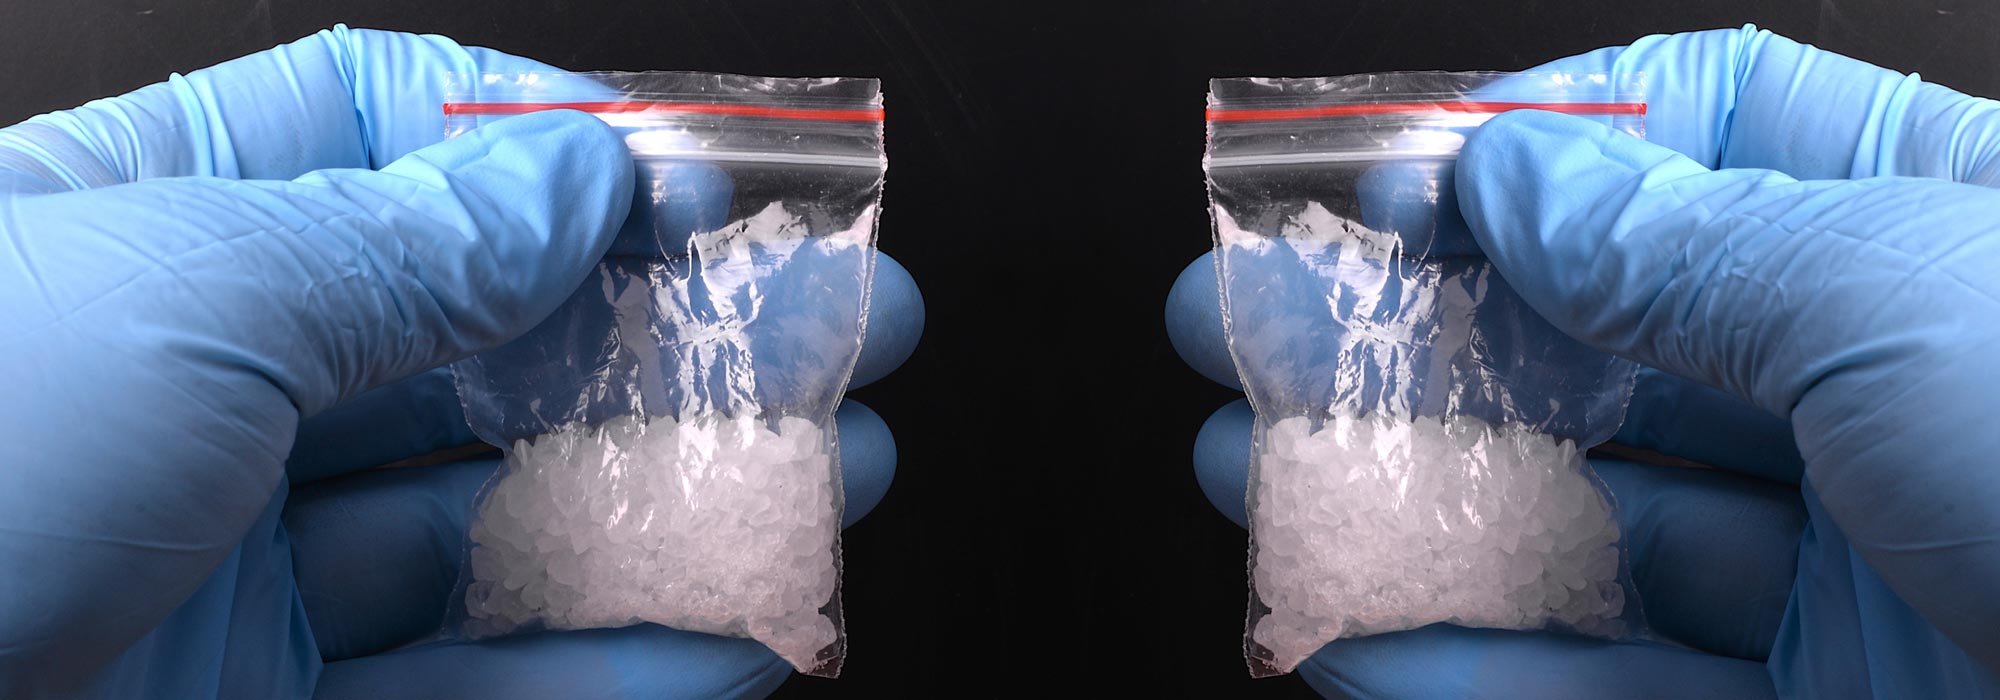 illegal ice drugs arrested